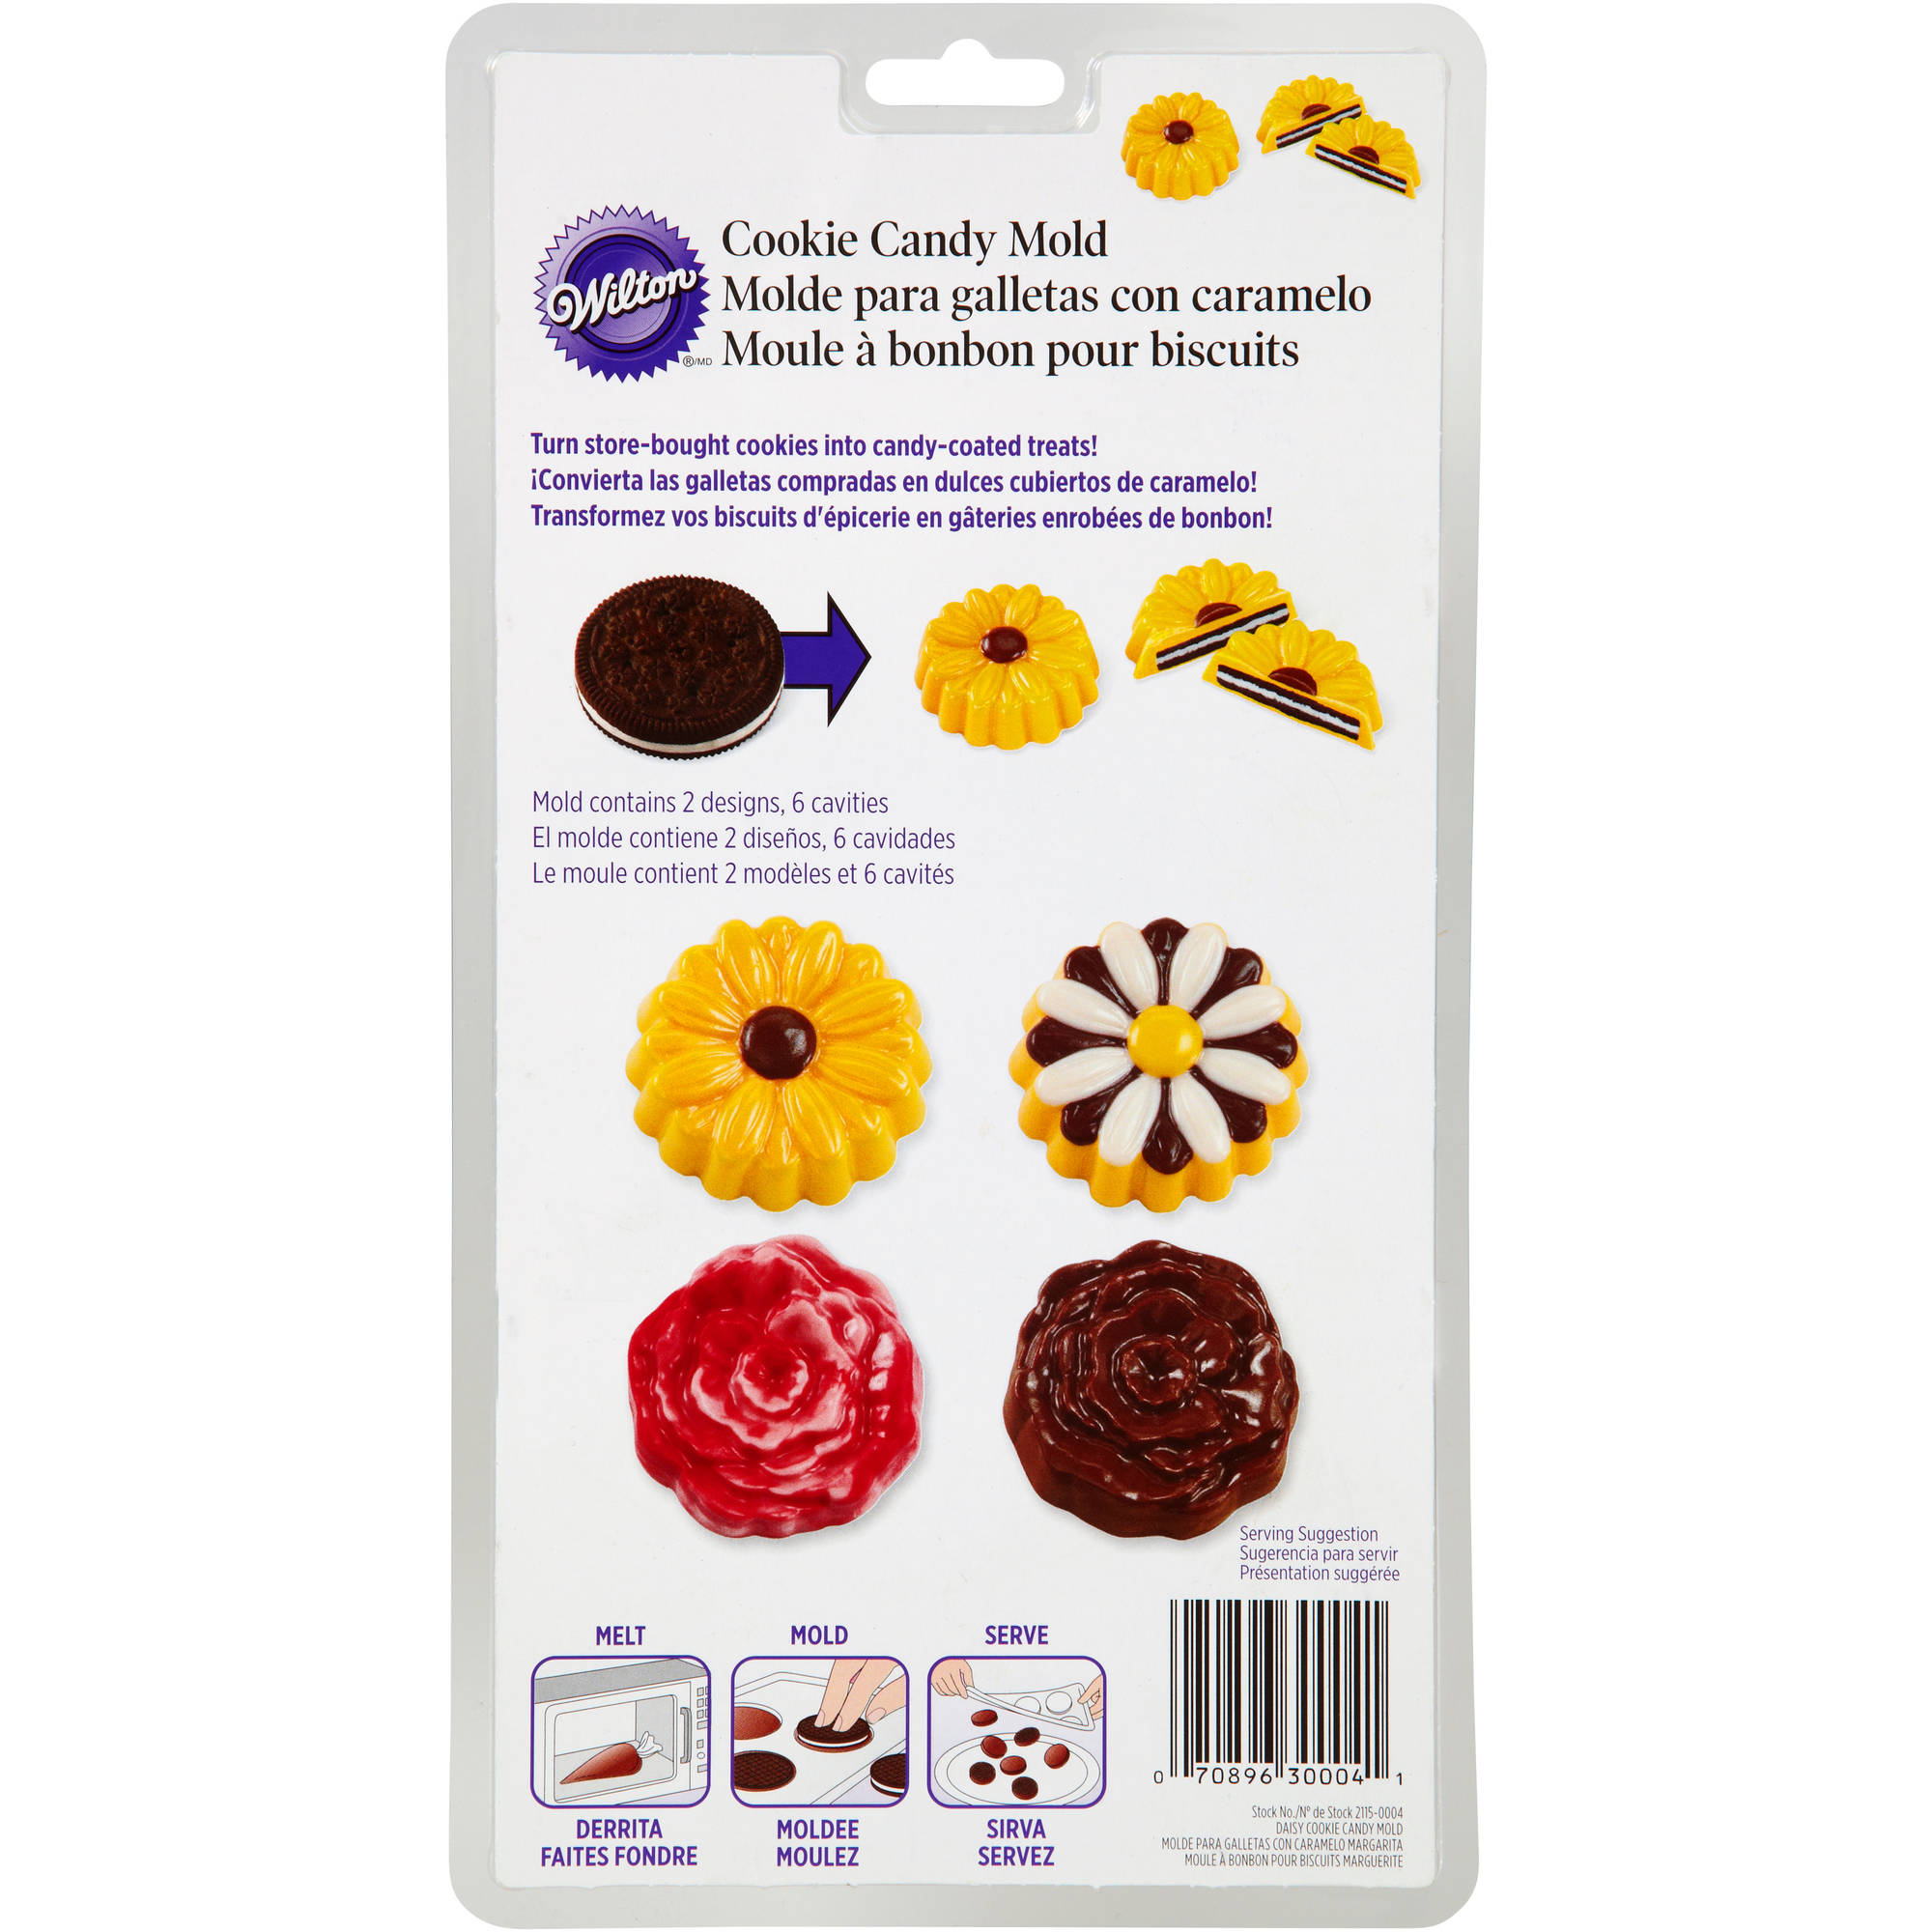 Wilton 6-Cavity Cookie & Candy Mold, Daisy & Rose 2 Designs 2115-0004